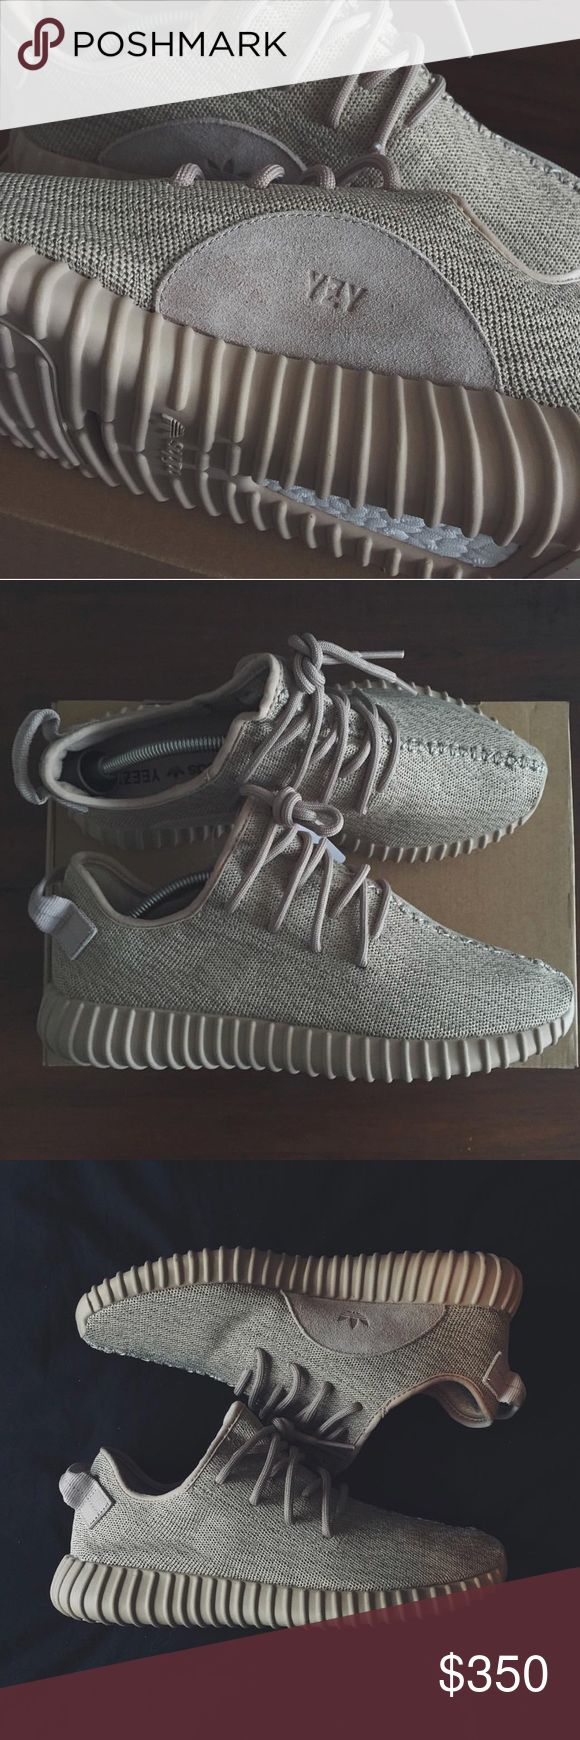 Yeezy Boost 350's - Oxford Tan I'll start with YES THEYRE AUTHENTIC and I'll follow with, NO I WILL NOT TAKE 1,000 PHOTOS TO PROVE THEY ARE AUTHENTIC. I'm not asking a ridiculous price because I didn't pay one, I got these from the LA Adidas location. Parting with because they're my least favorite color way in the 350 lineup that I have. Note to buyer: THESE DO NOT HAVE INSOLES! ✨ I removed them a couple weeks after buying, I have hell for arches. So keep in mind when receiving that they…